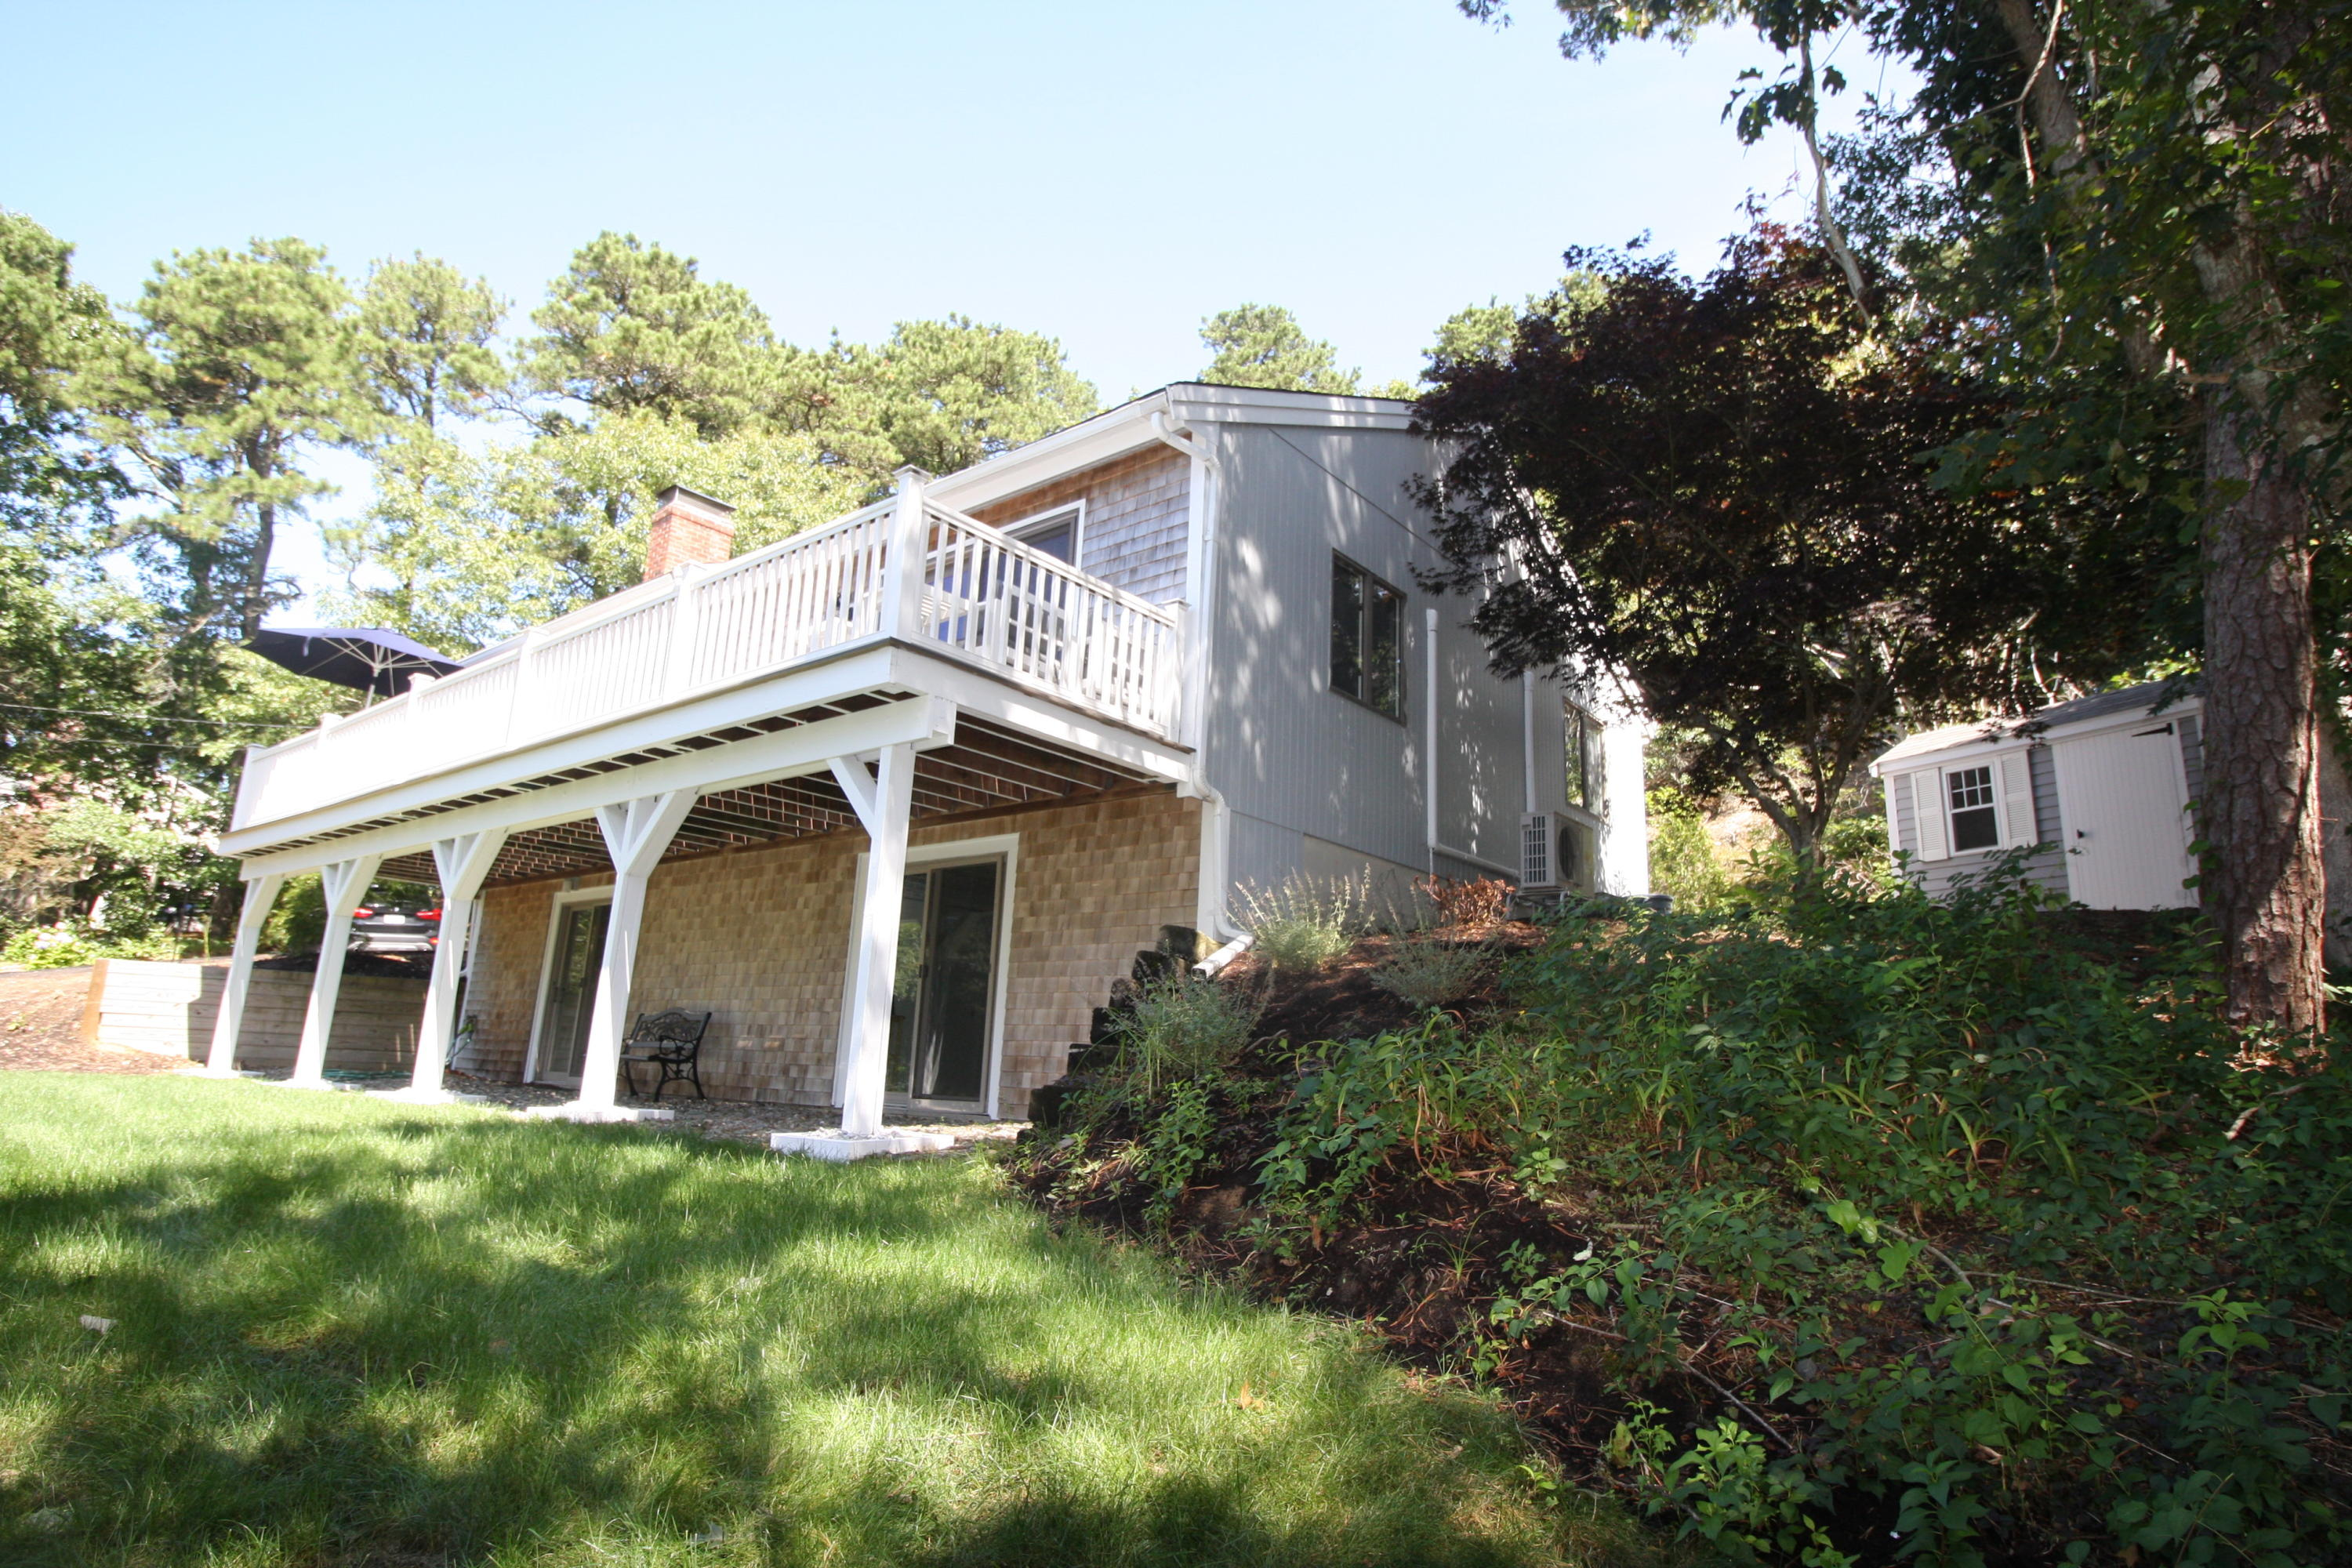 168 South Pond Drive, Brewster MA, 02631 sales details